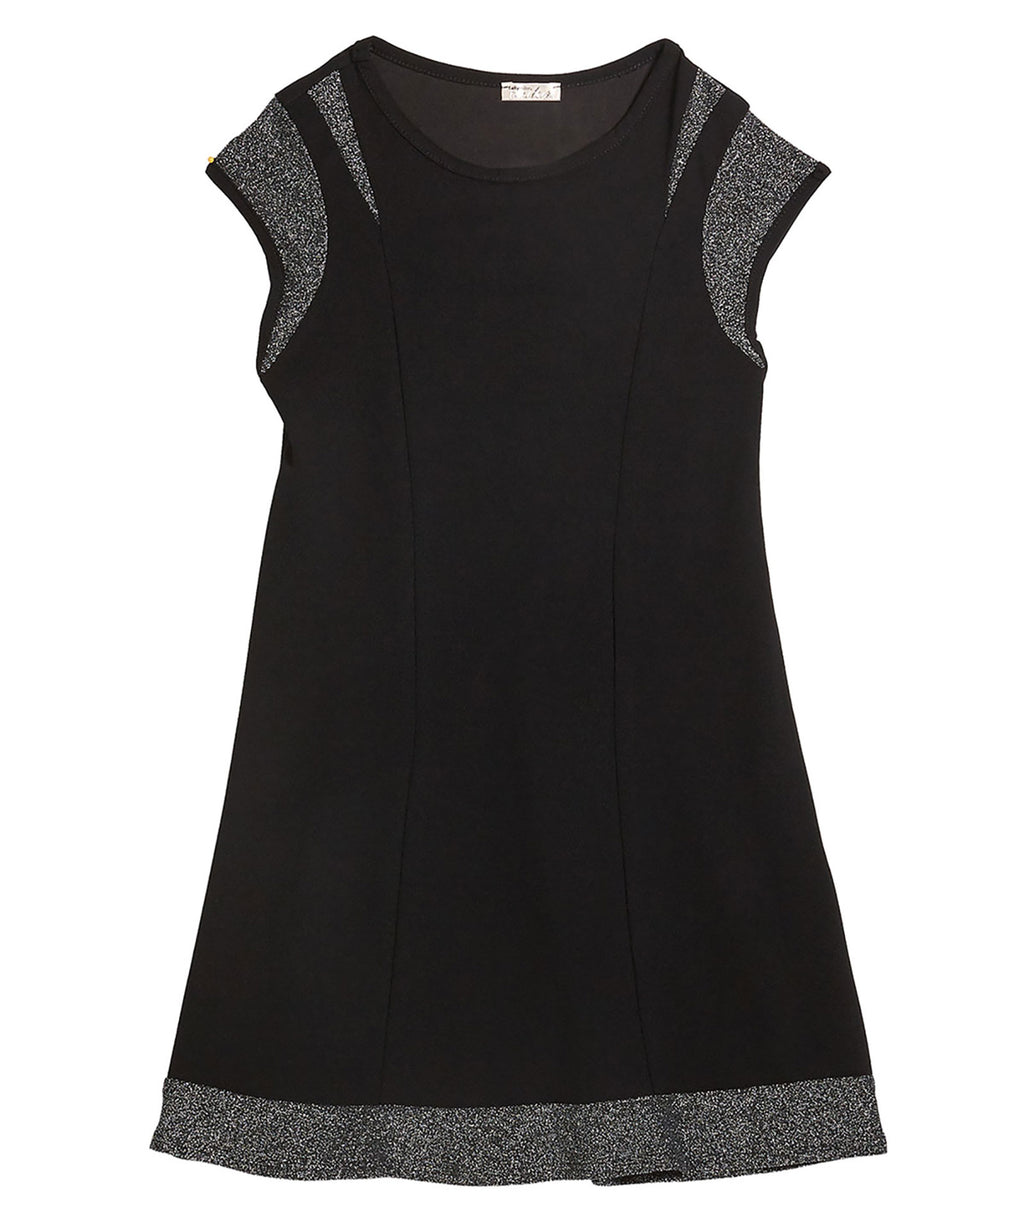 Sally Miller Girls Demi Black Dress